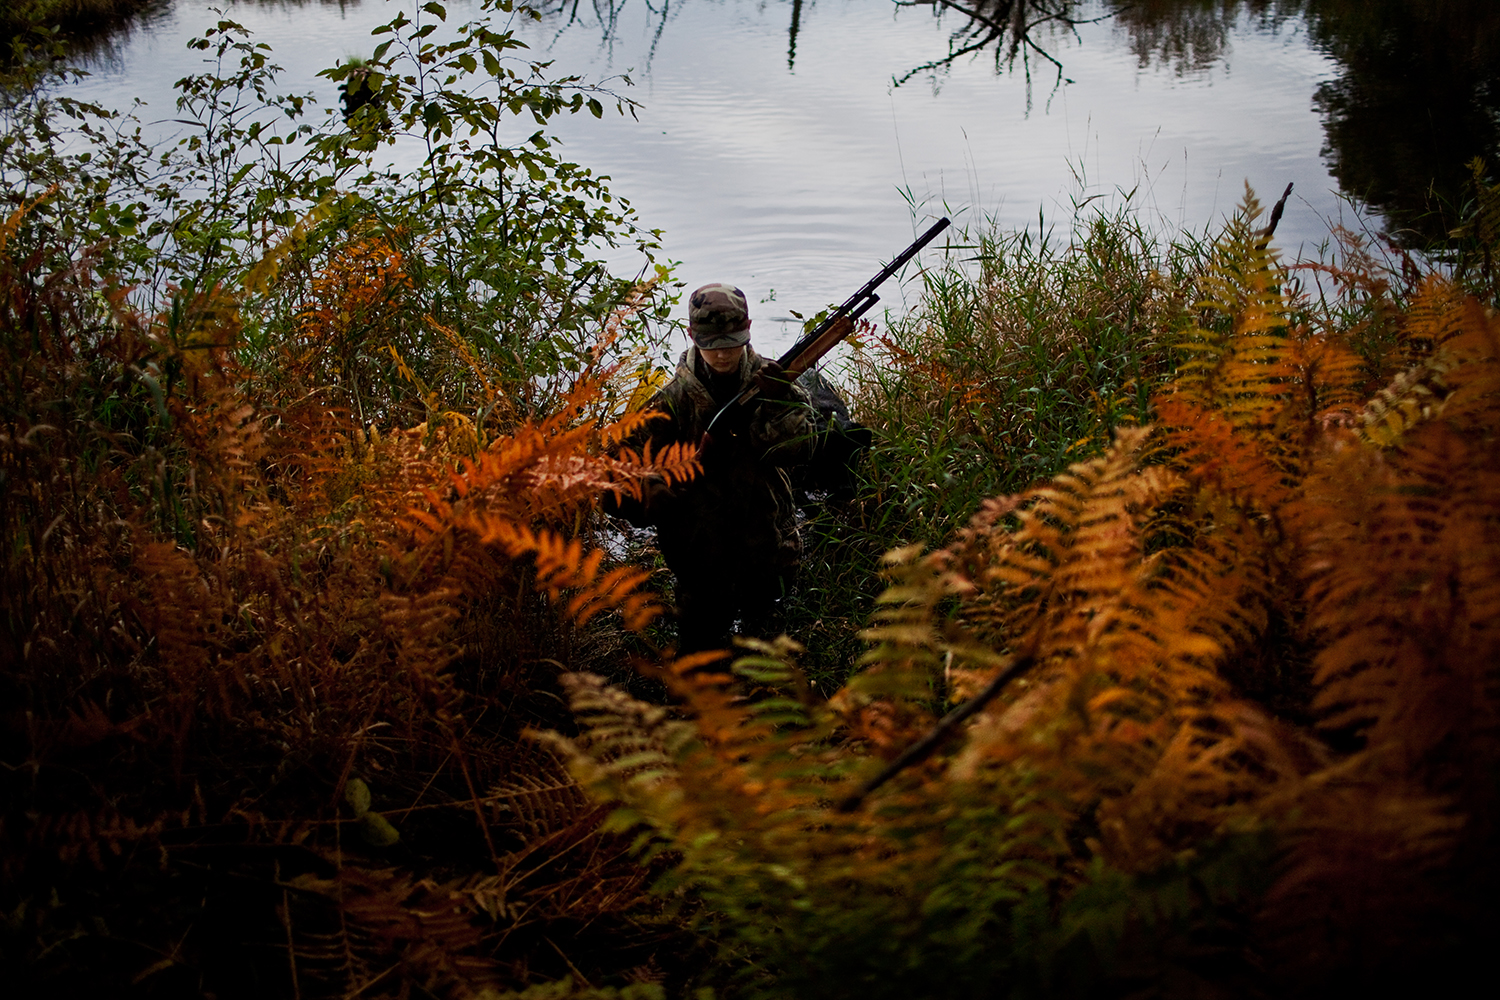 Isaac Eisch climbs out of the pond while duck hunting with their uncle in Wautoma, Wis. Thanks to their uncle, the brothers are introduced to a routined schedule and are kept busy with outdoor activities, while their father is deployed in Afghanistan.